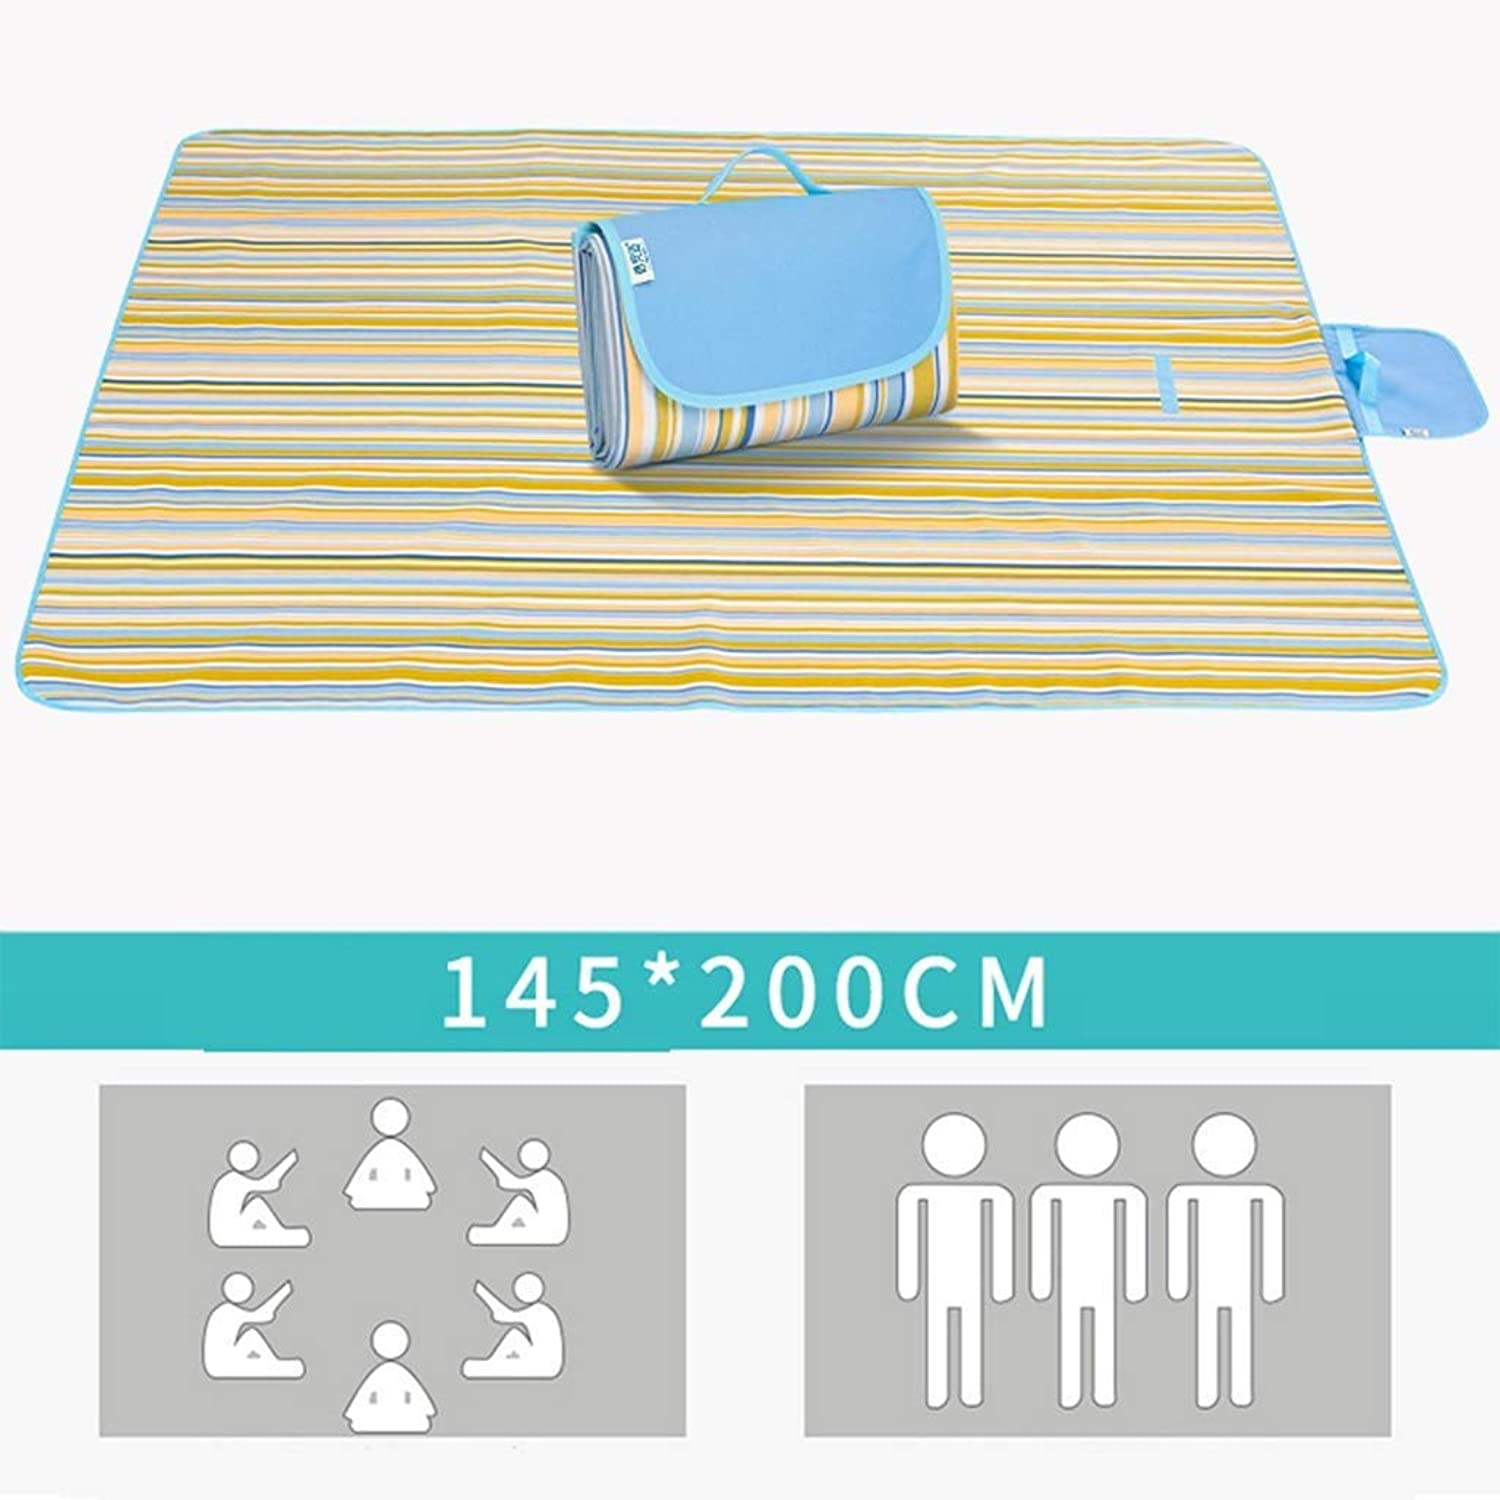 Picnic Blanket, Outdoor Portable Padded Beach Mat, Waterproof and Sand Resistant, Suitable for Camping Hiking Festivals